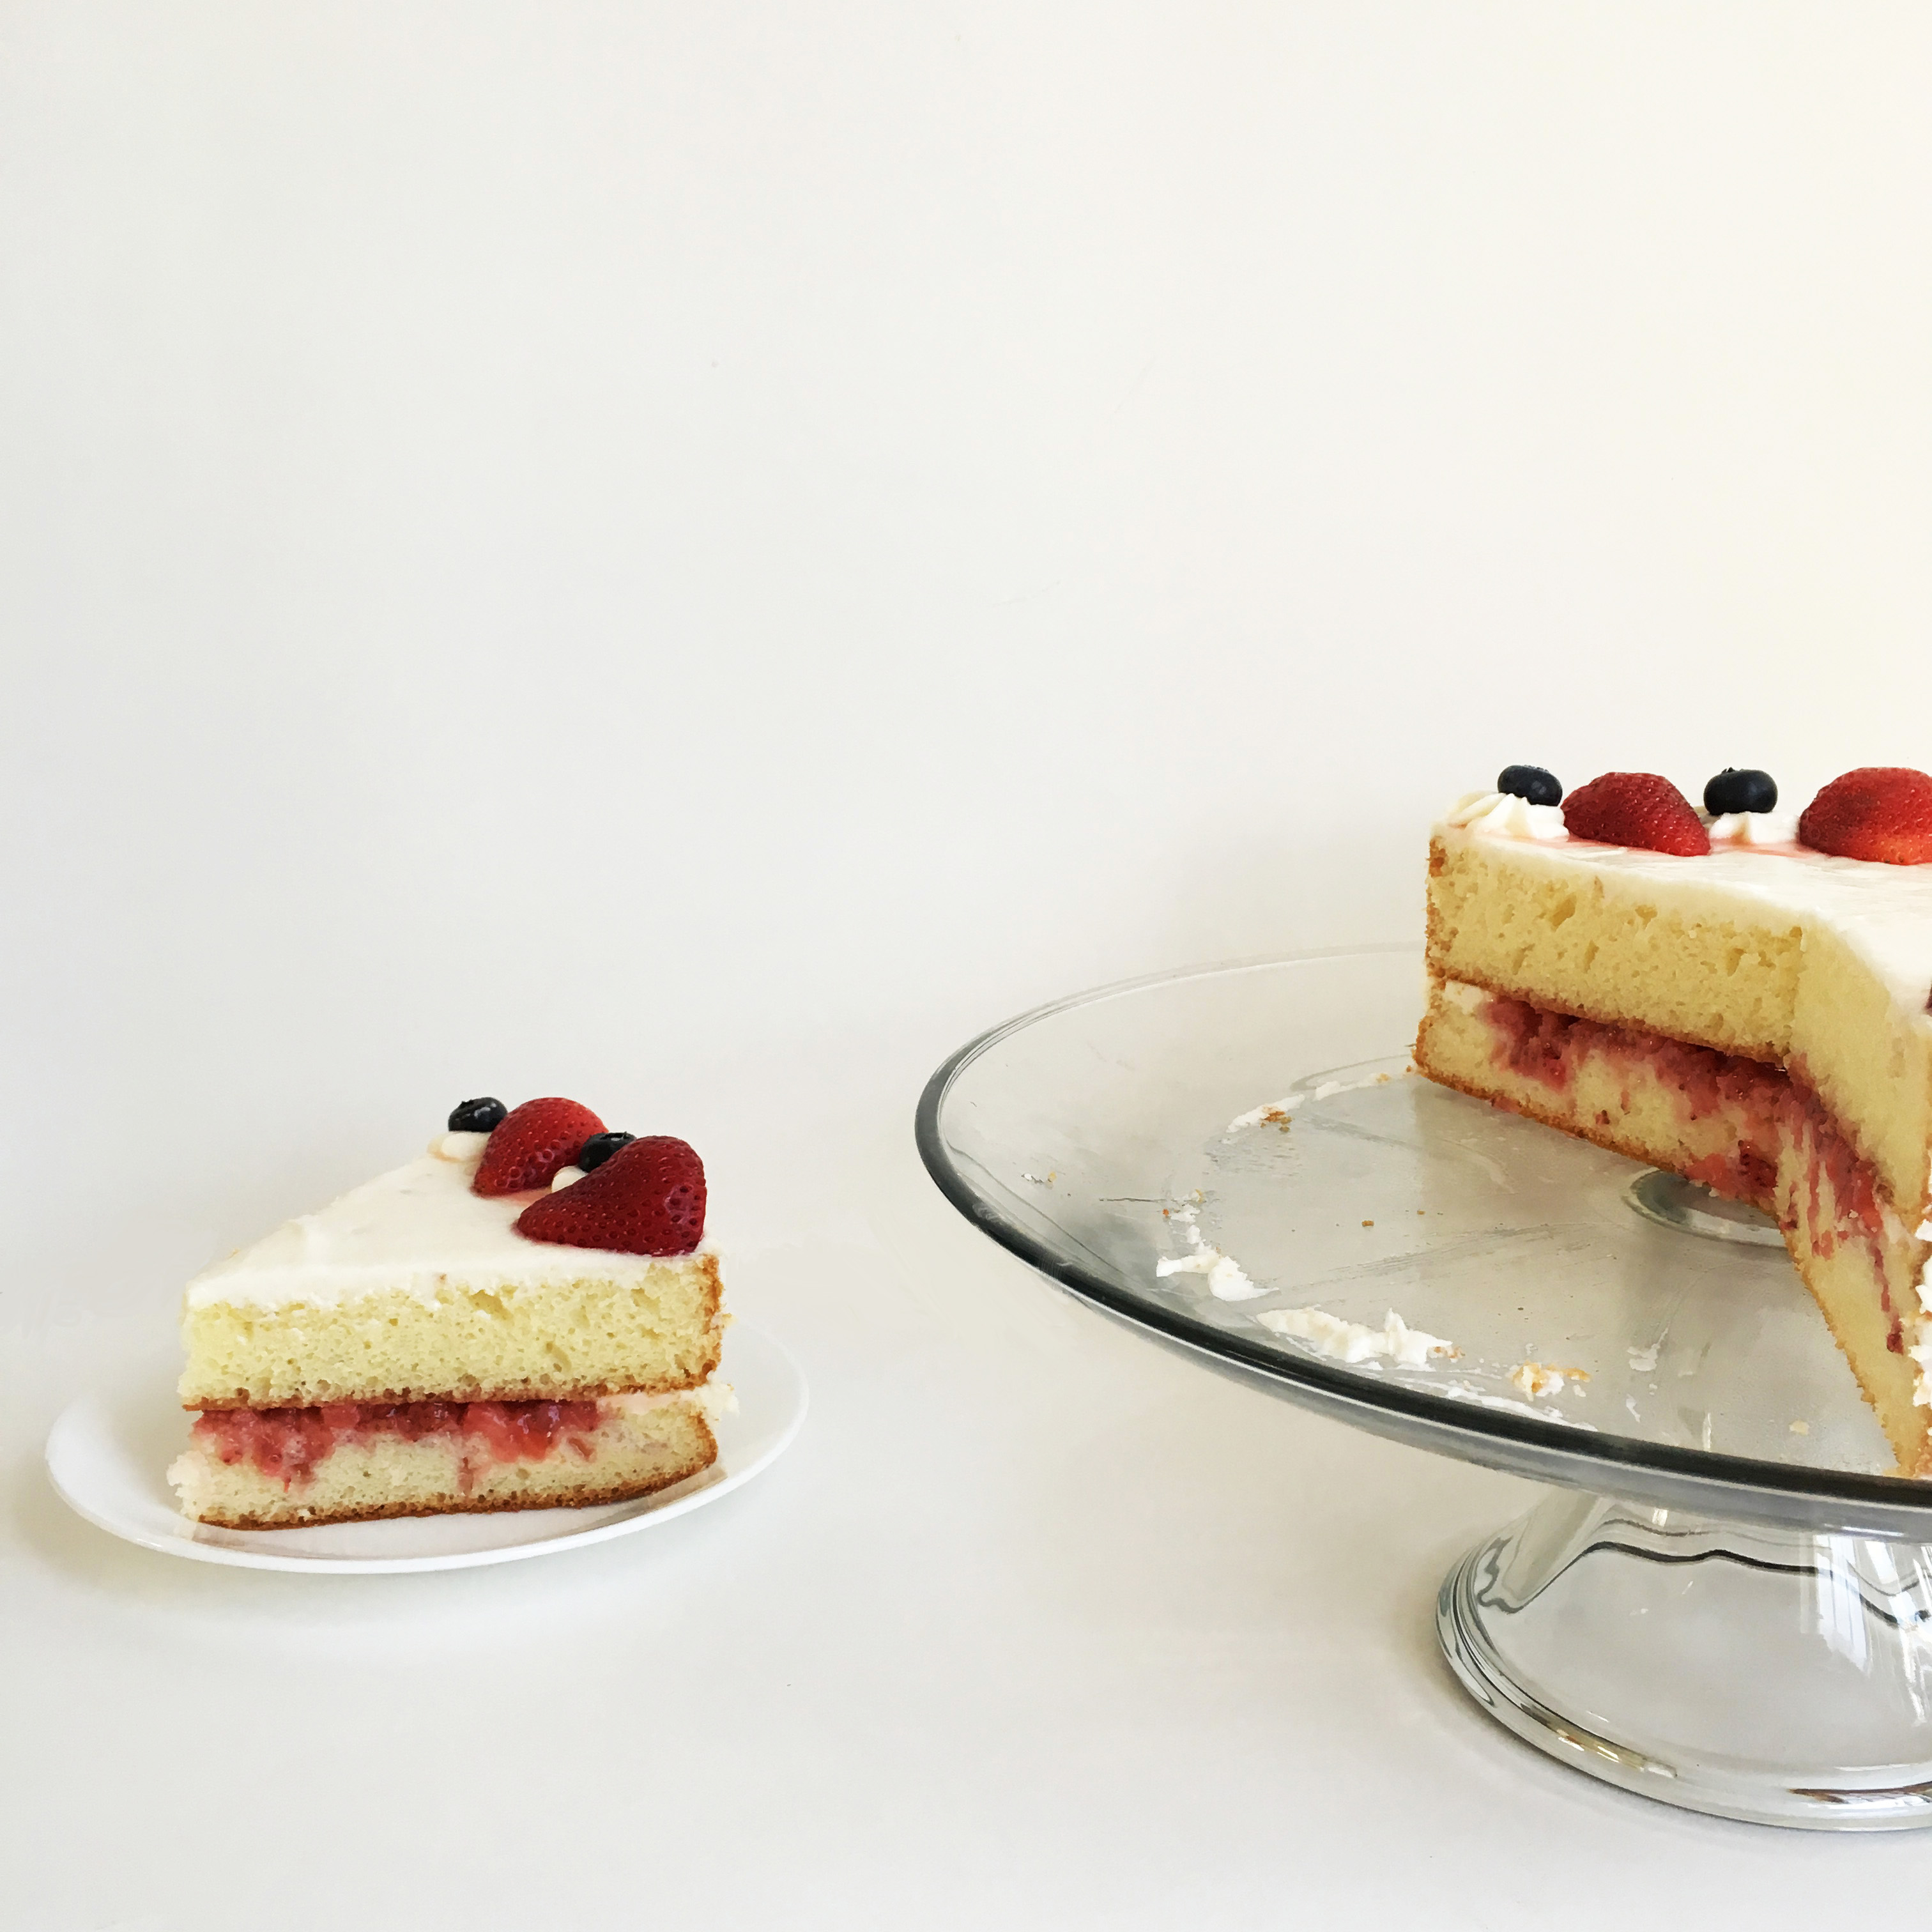 #FlavorFriday : Would Anyone Care For A Slice?